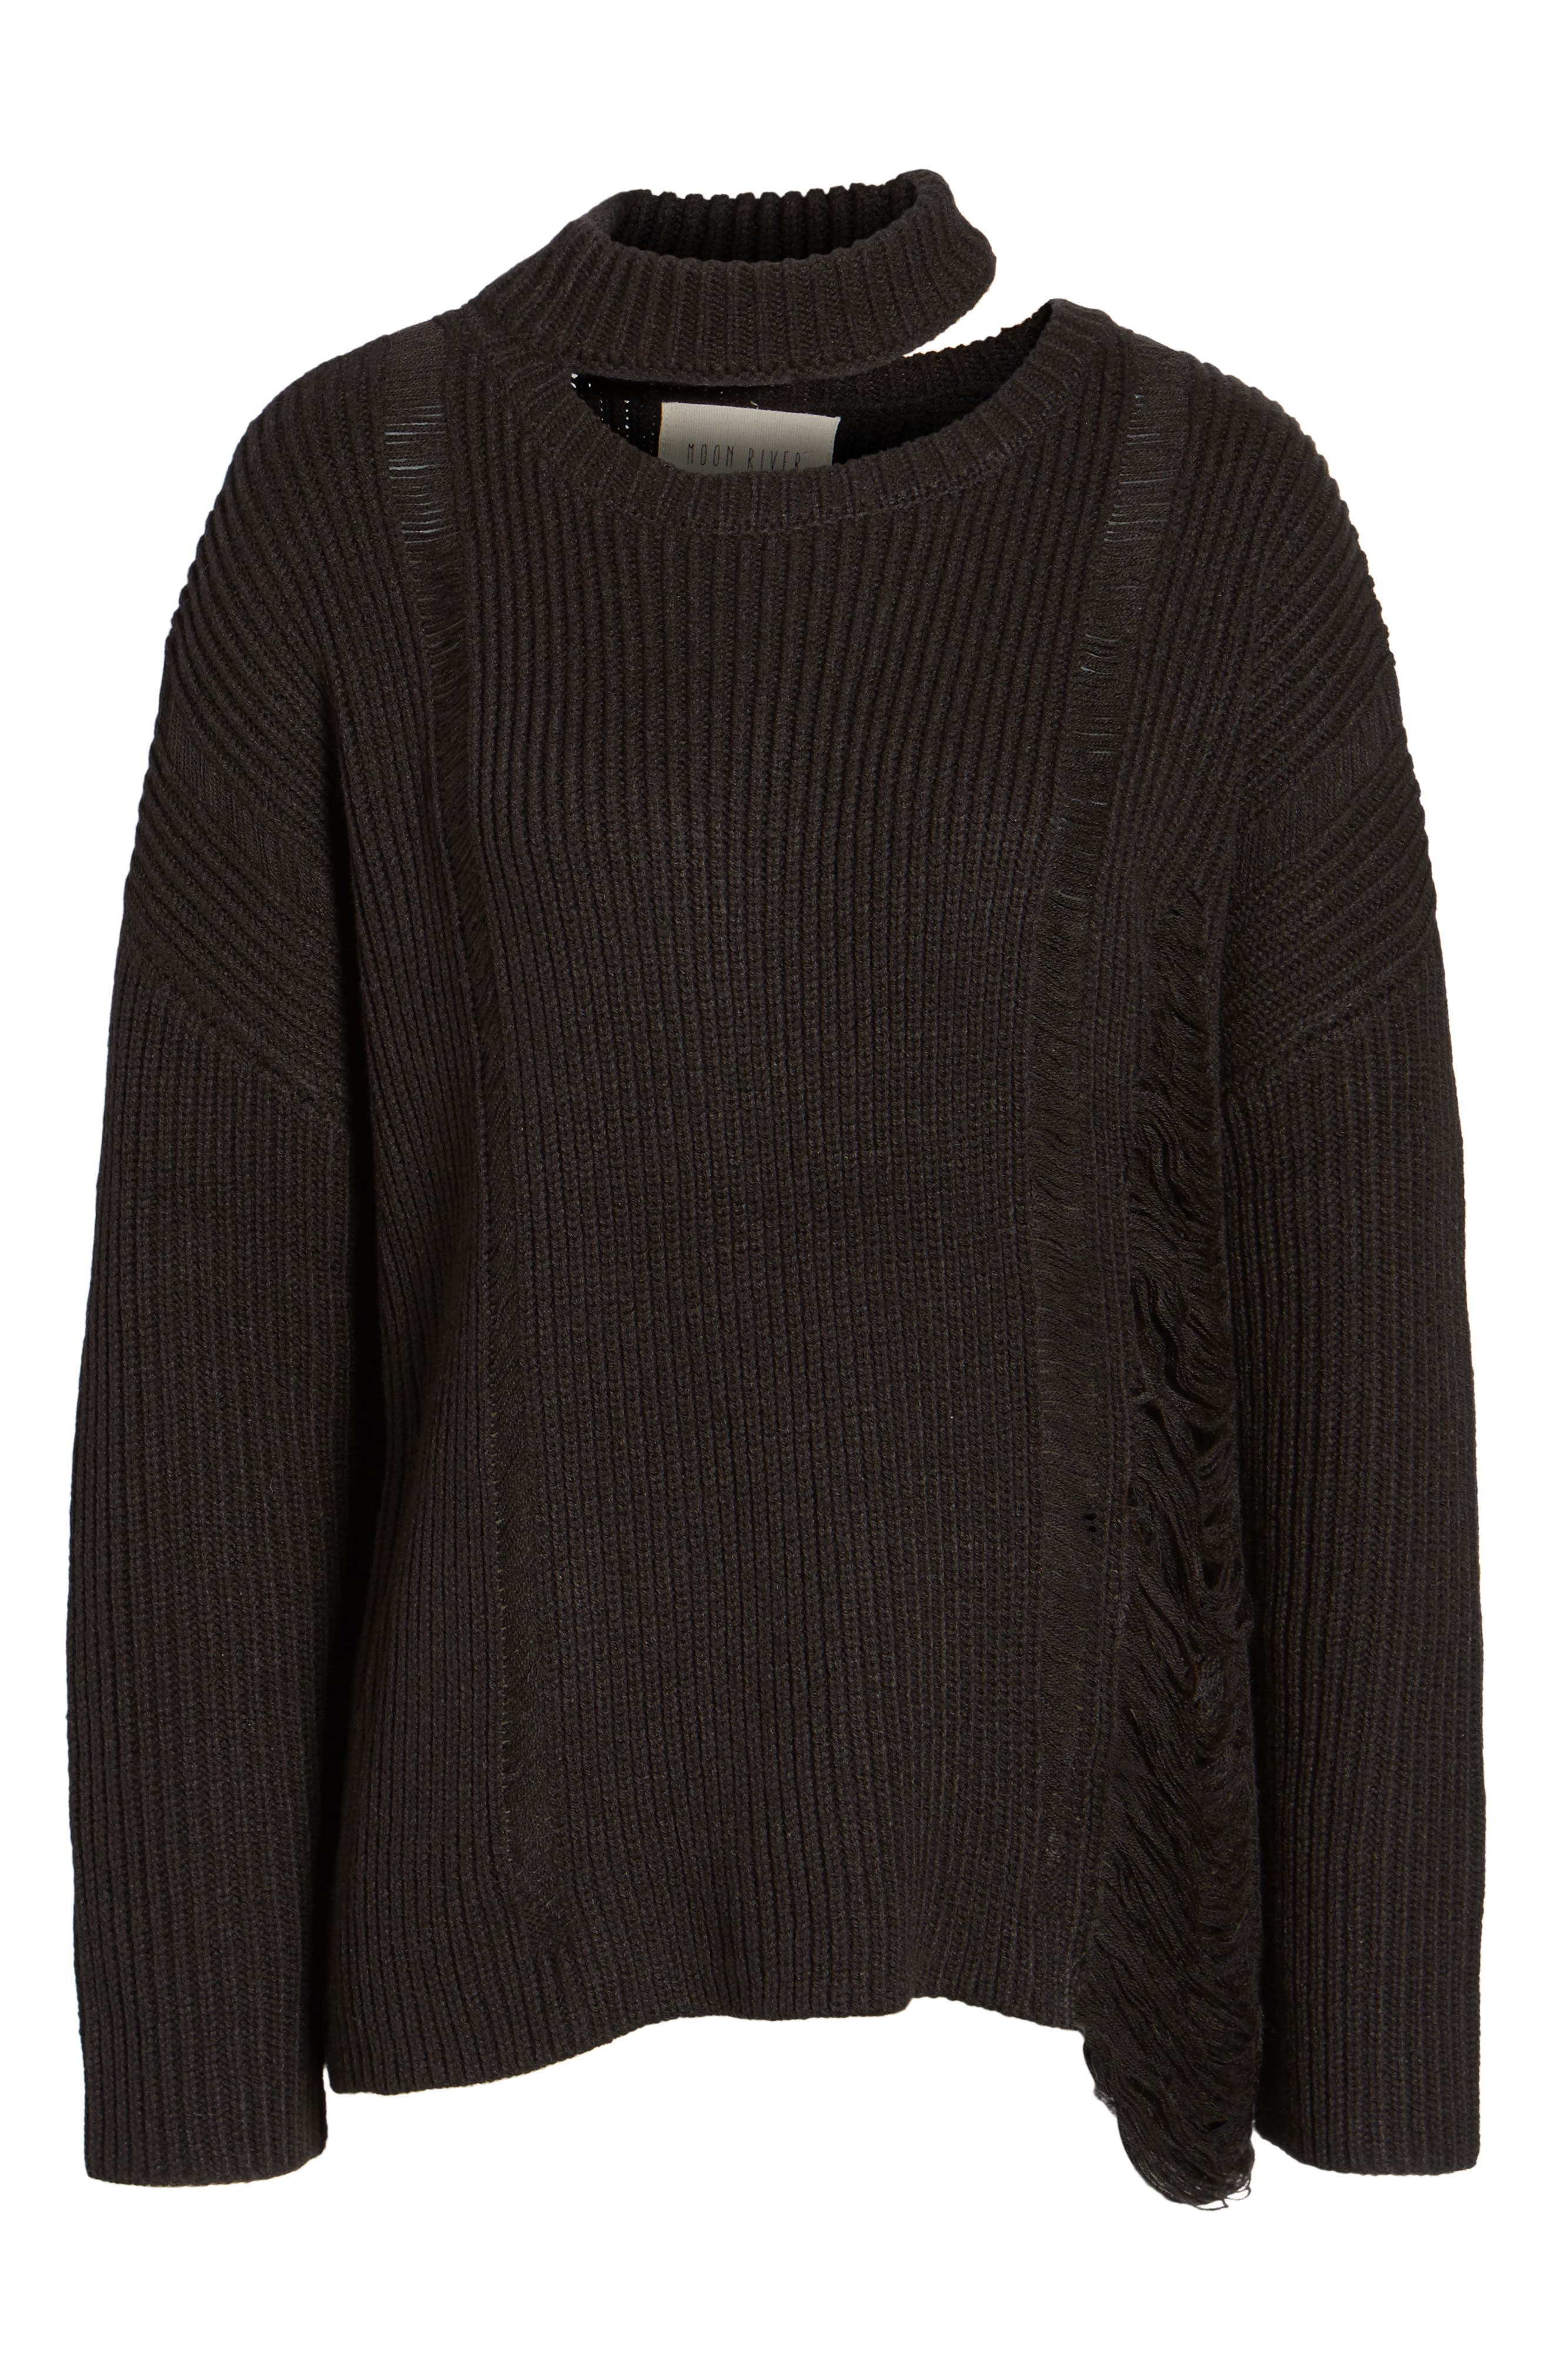 Destroyed Sweater,                             Alternate thumbnail 6, color,                             001